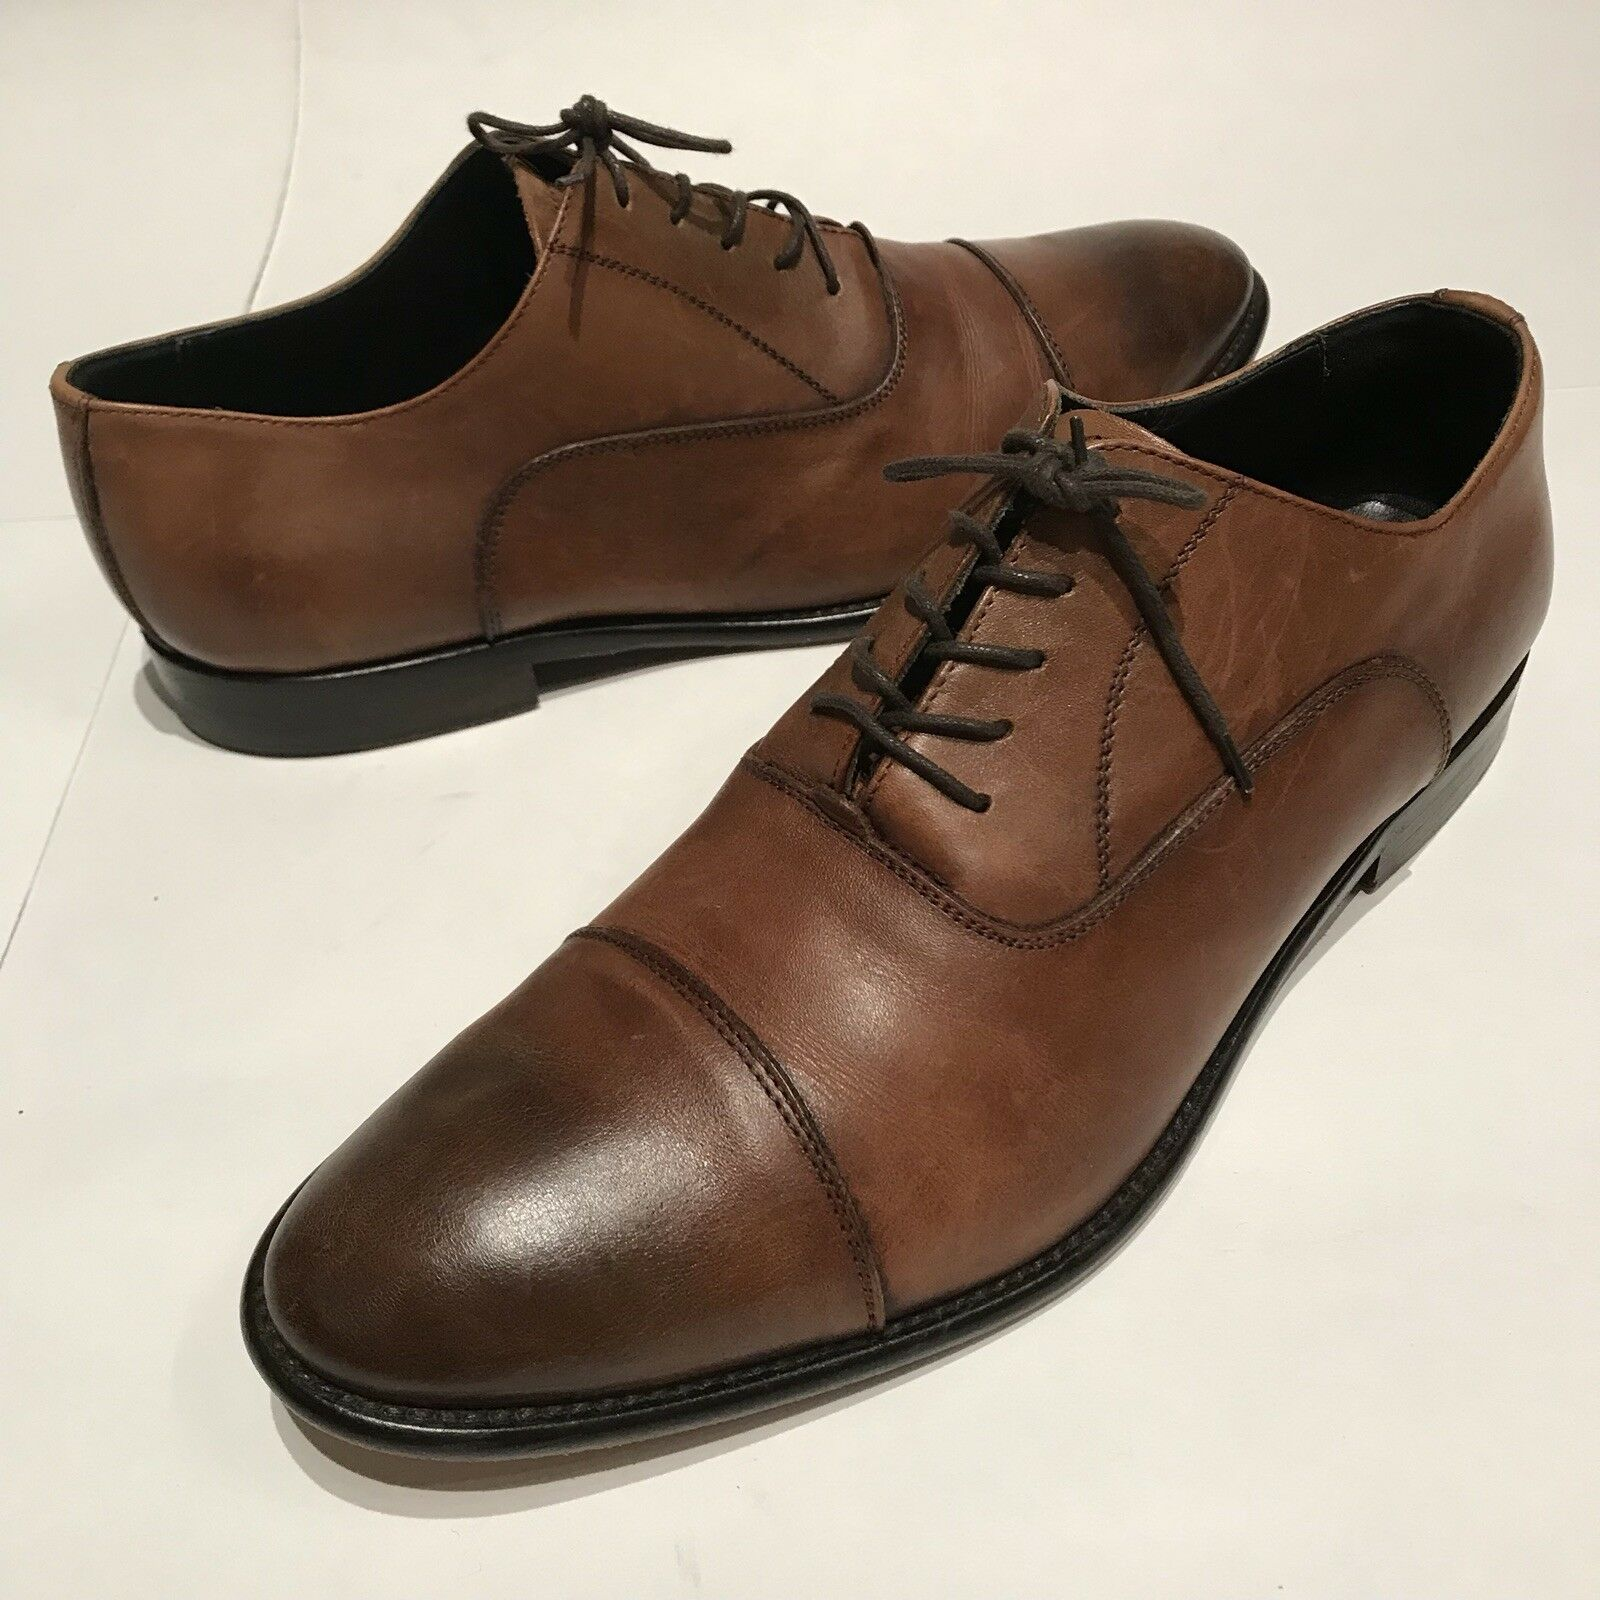 To bottes New York  Brandon 'Cap Toe Oxford, marron, Taille  11.5 m Retail  395